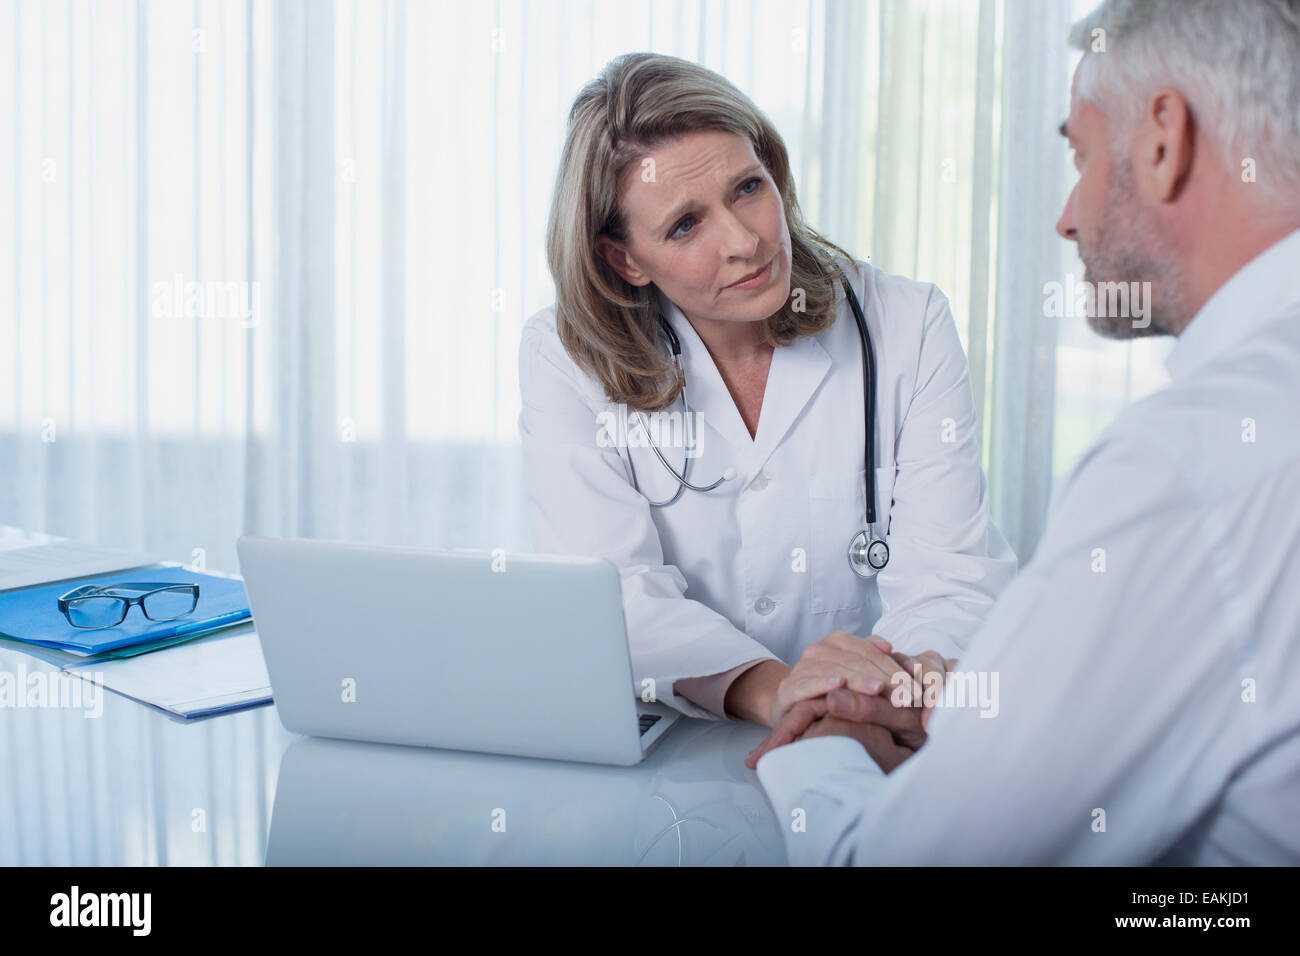 Female doctor sitting at desk with laptop and consoling patient - Stock Image